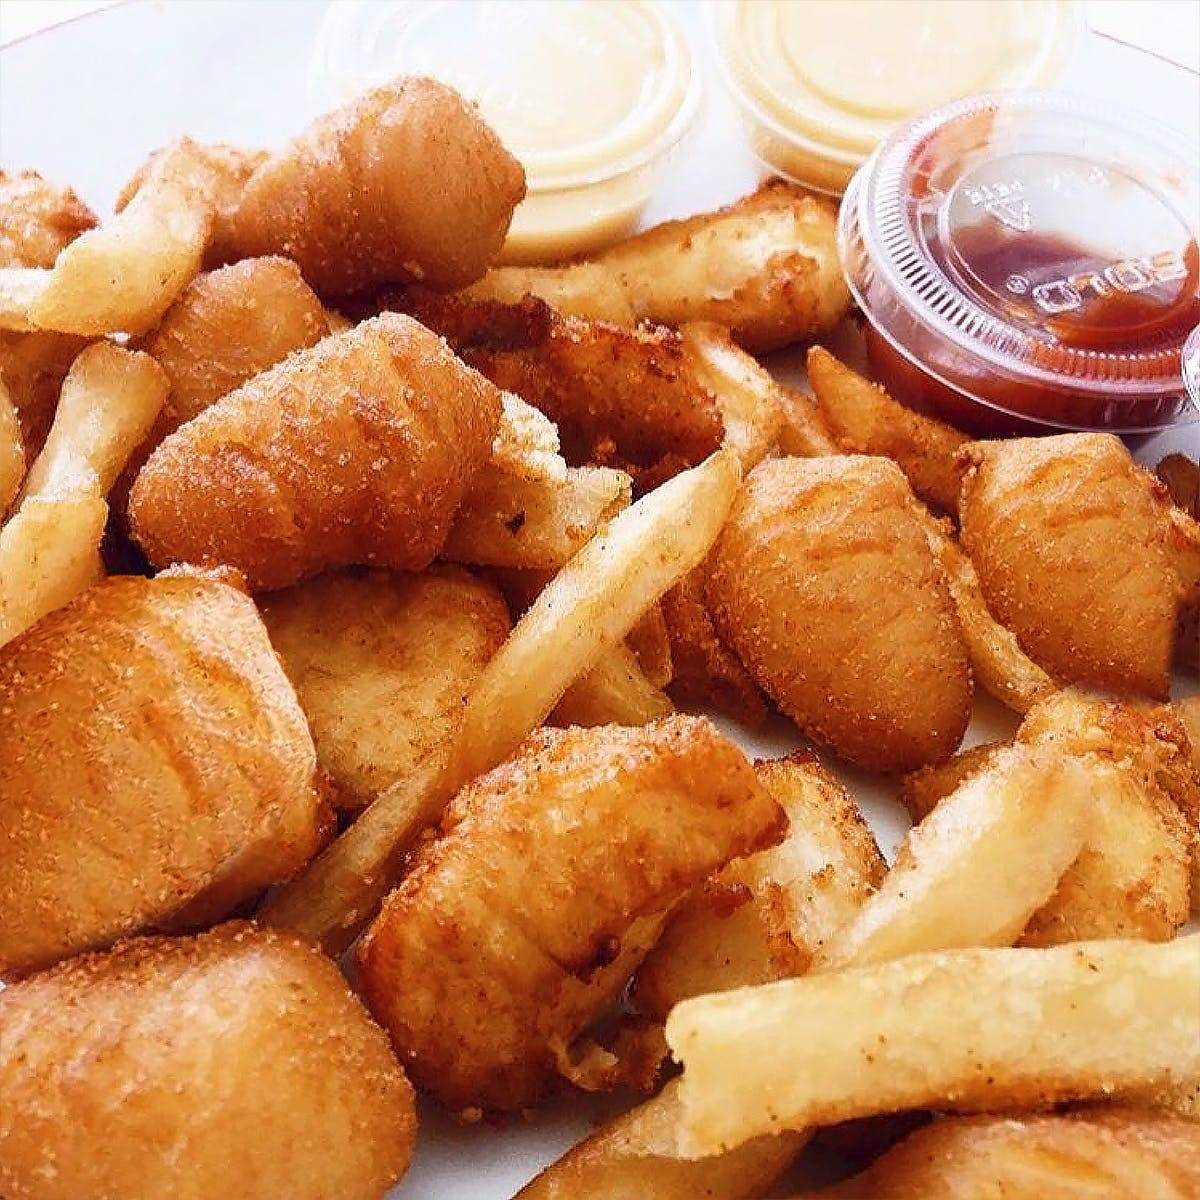 Garden Catering - Potato Cones & French Fries for 6